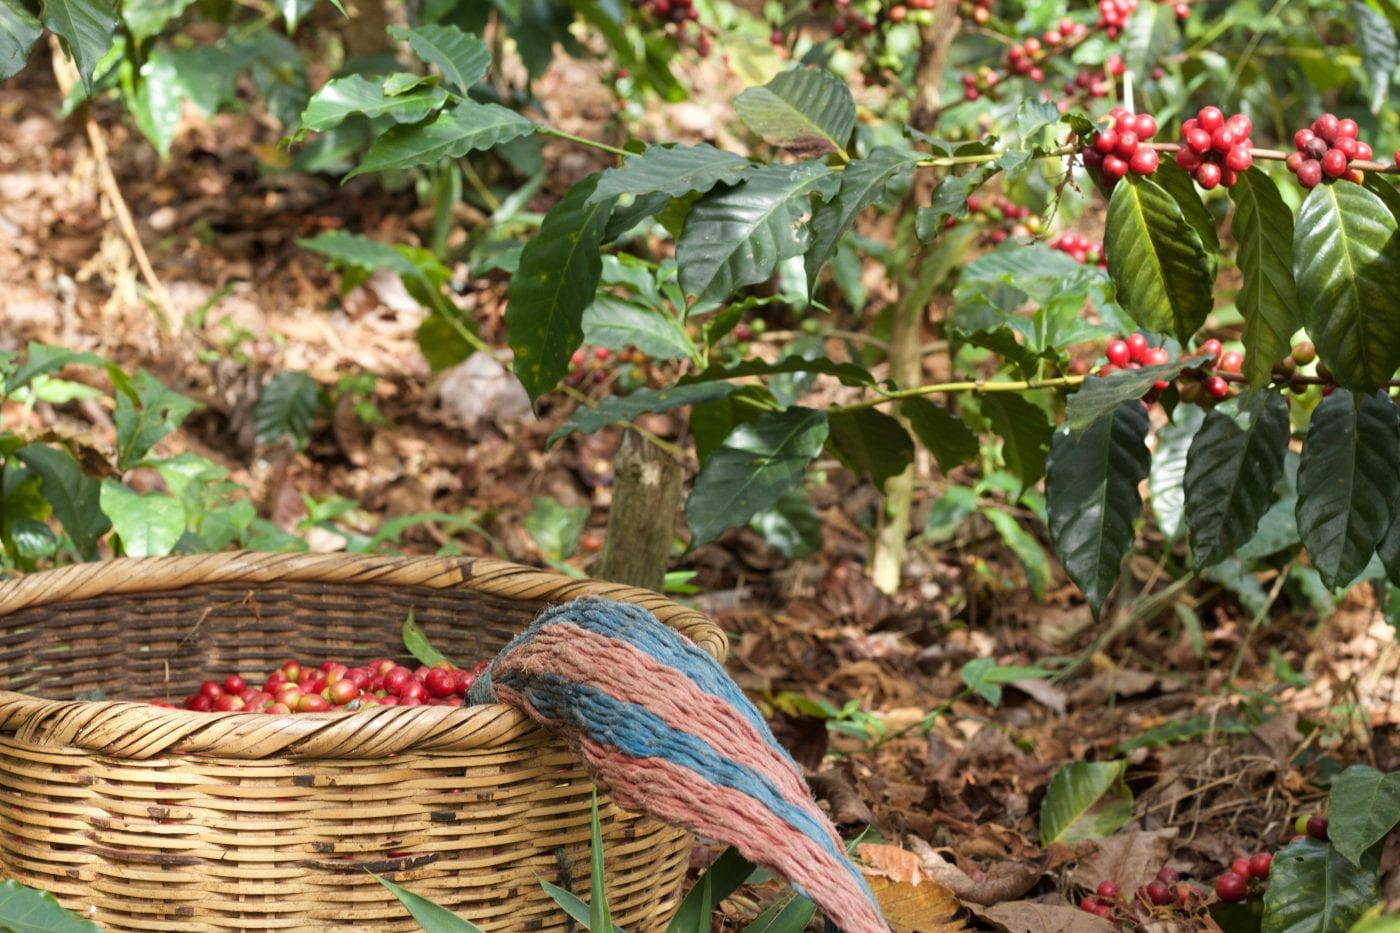 Harvest producing some beautiful coffee cherries